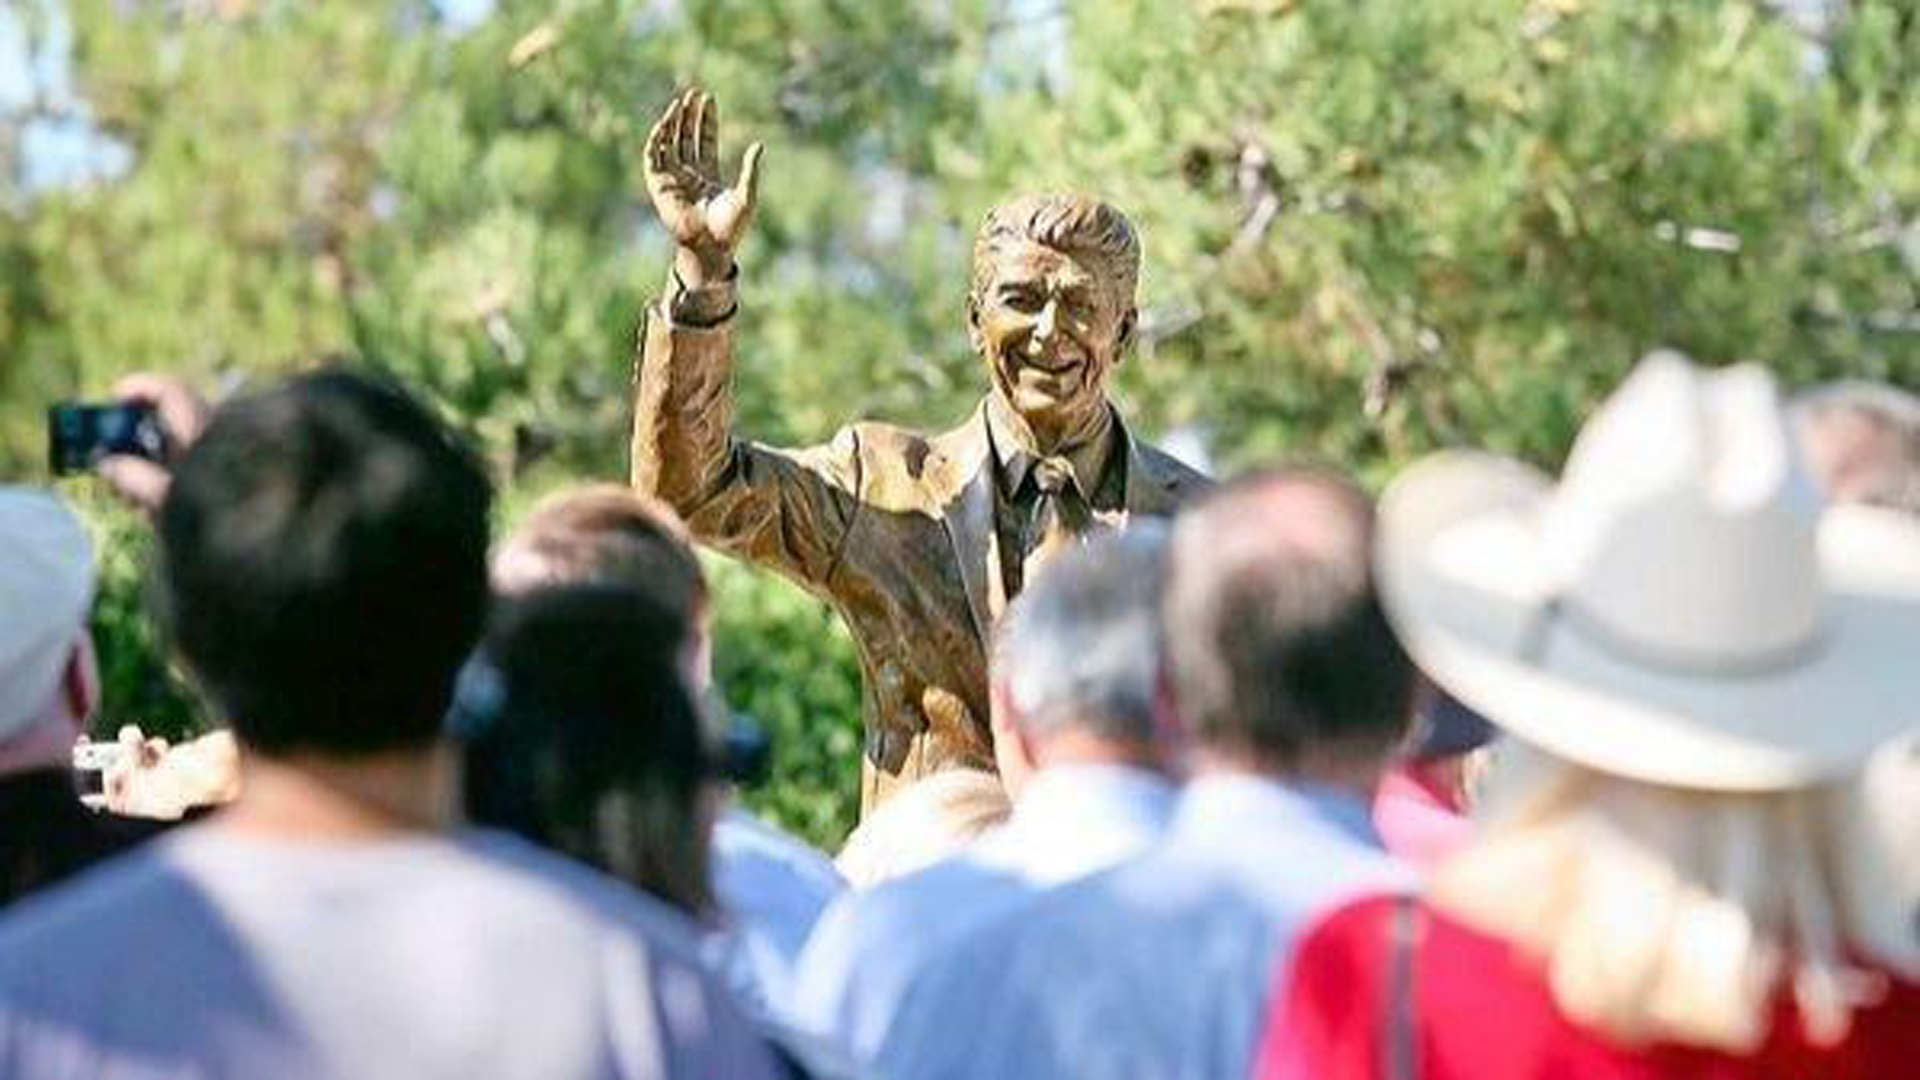 The Ronald Reagan statue at Bonita Canyon Sports Park in Newport Beach is pictured at its dedication in 2011. It will get a new home this year among the sculptures at Civic Center Park in Newport Beach. (Credit: Los Angeles Times)